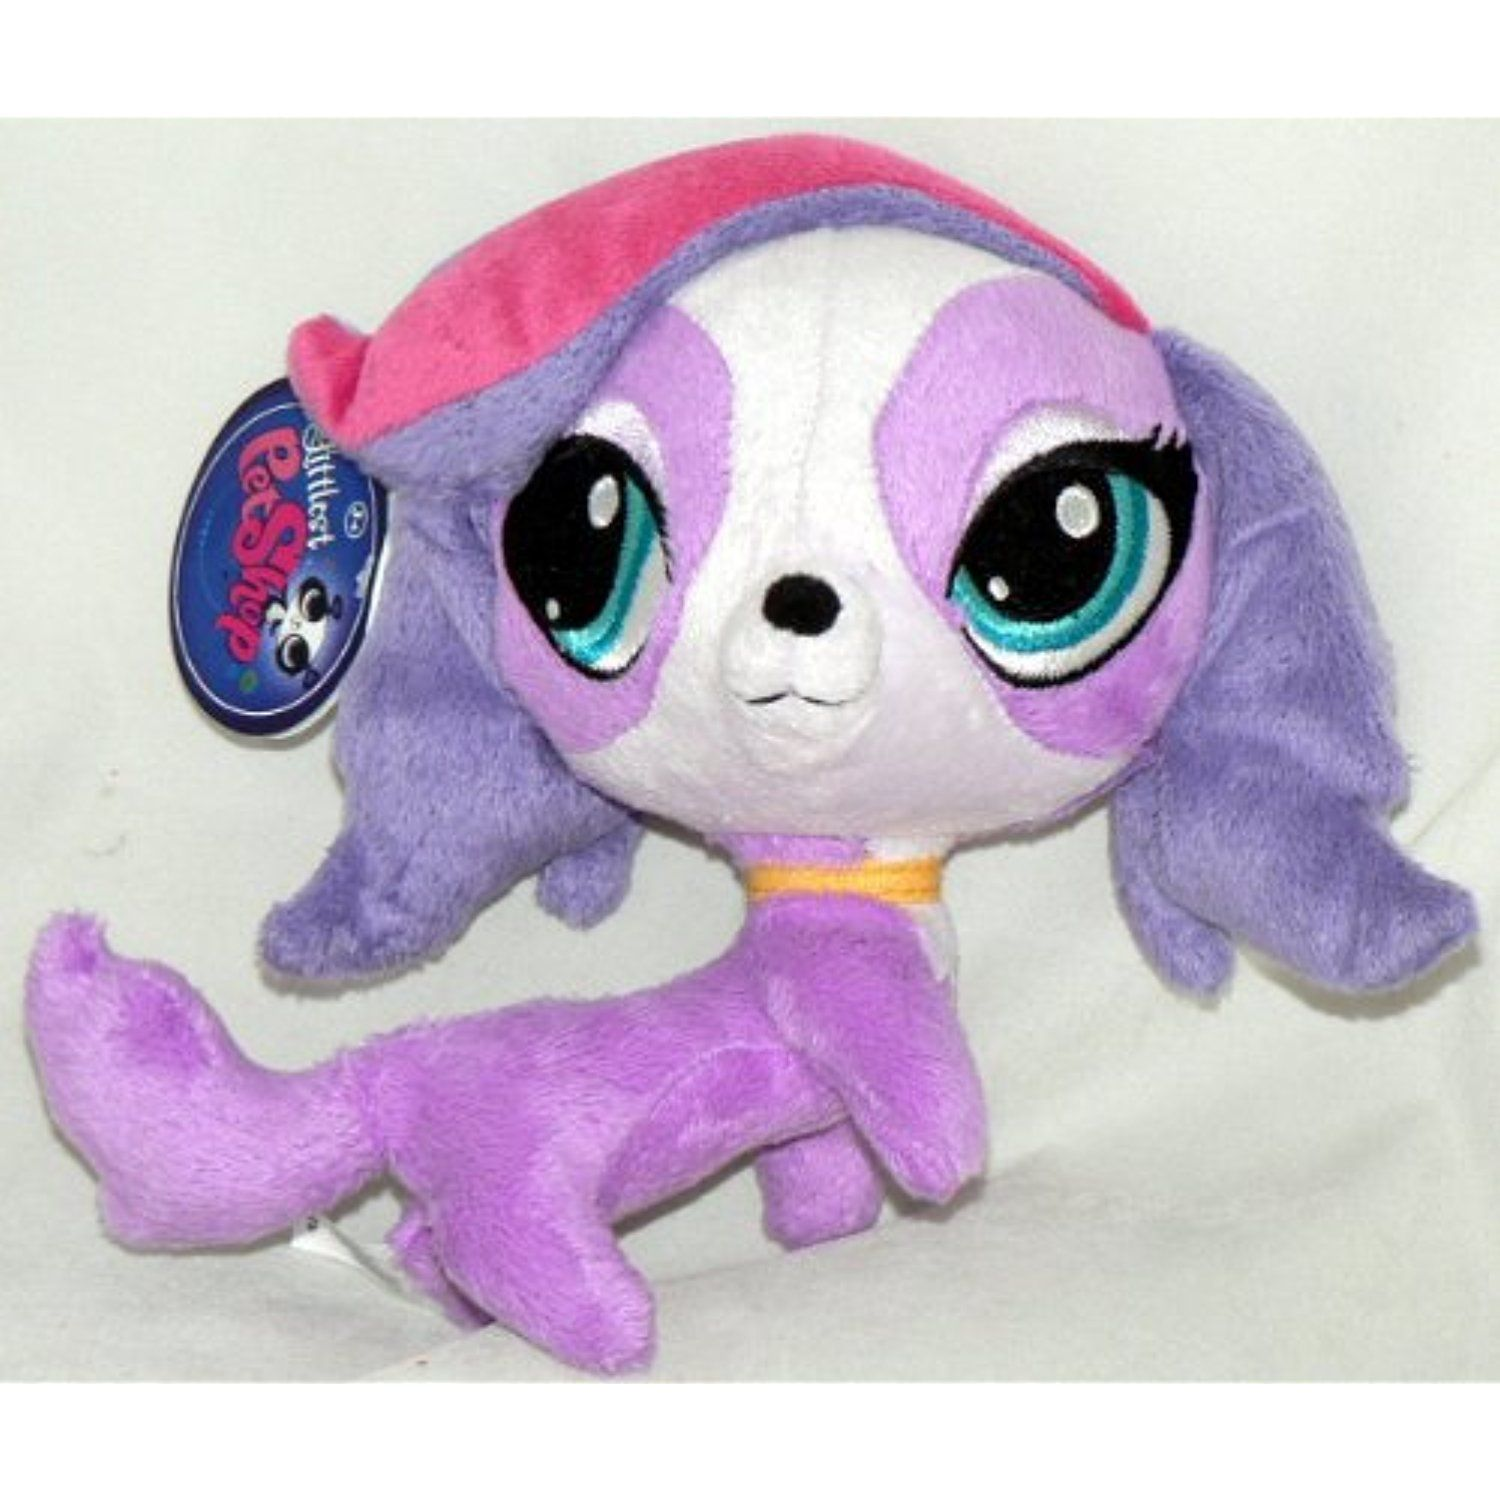 Littlest Pet Shop 6 Inch Plush Pet Figure Zoe Trent Dog Be Sure To Check Out This Awesome Product This Is An Affili Littlest Pet Shop Little Pets Pet Shop